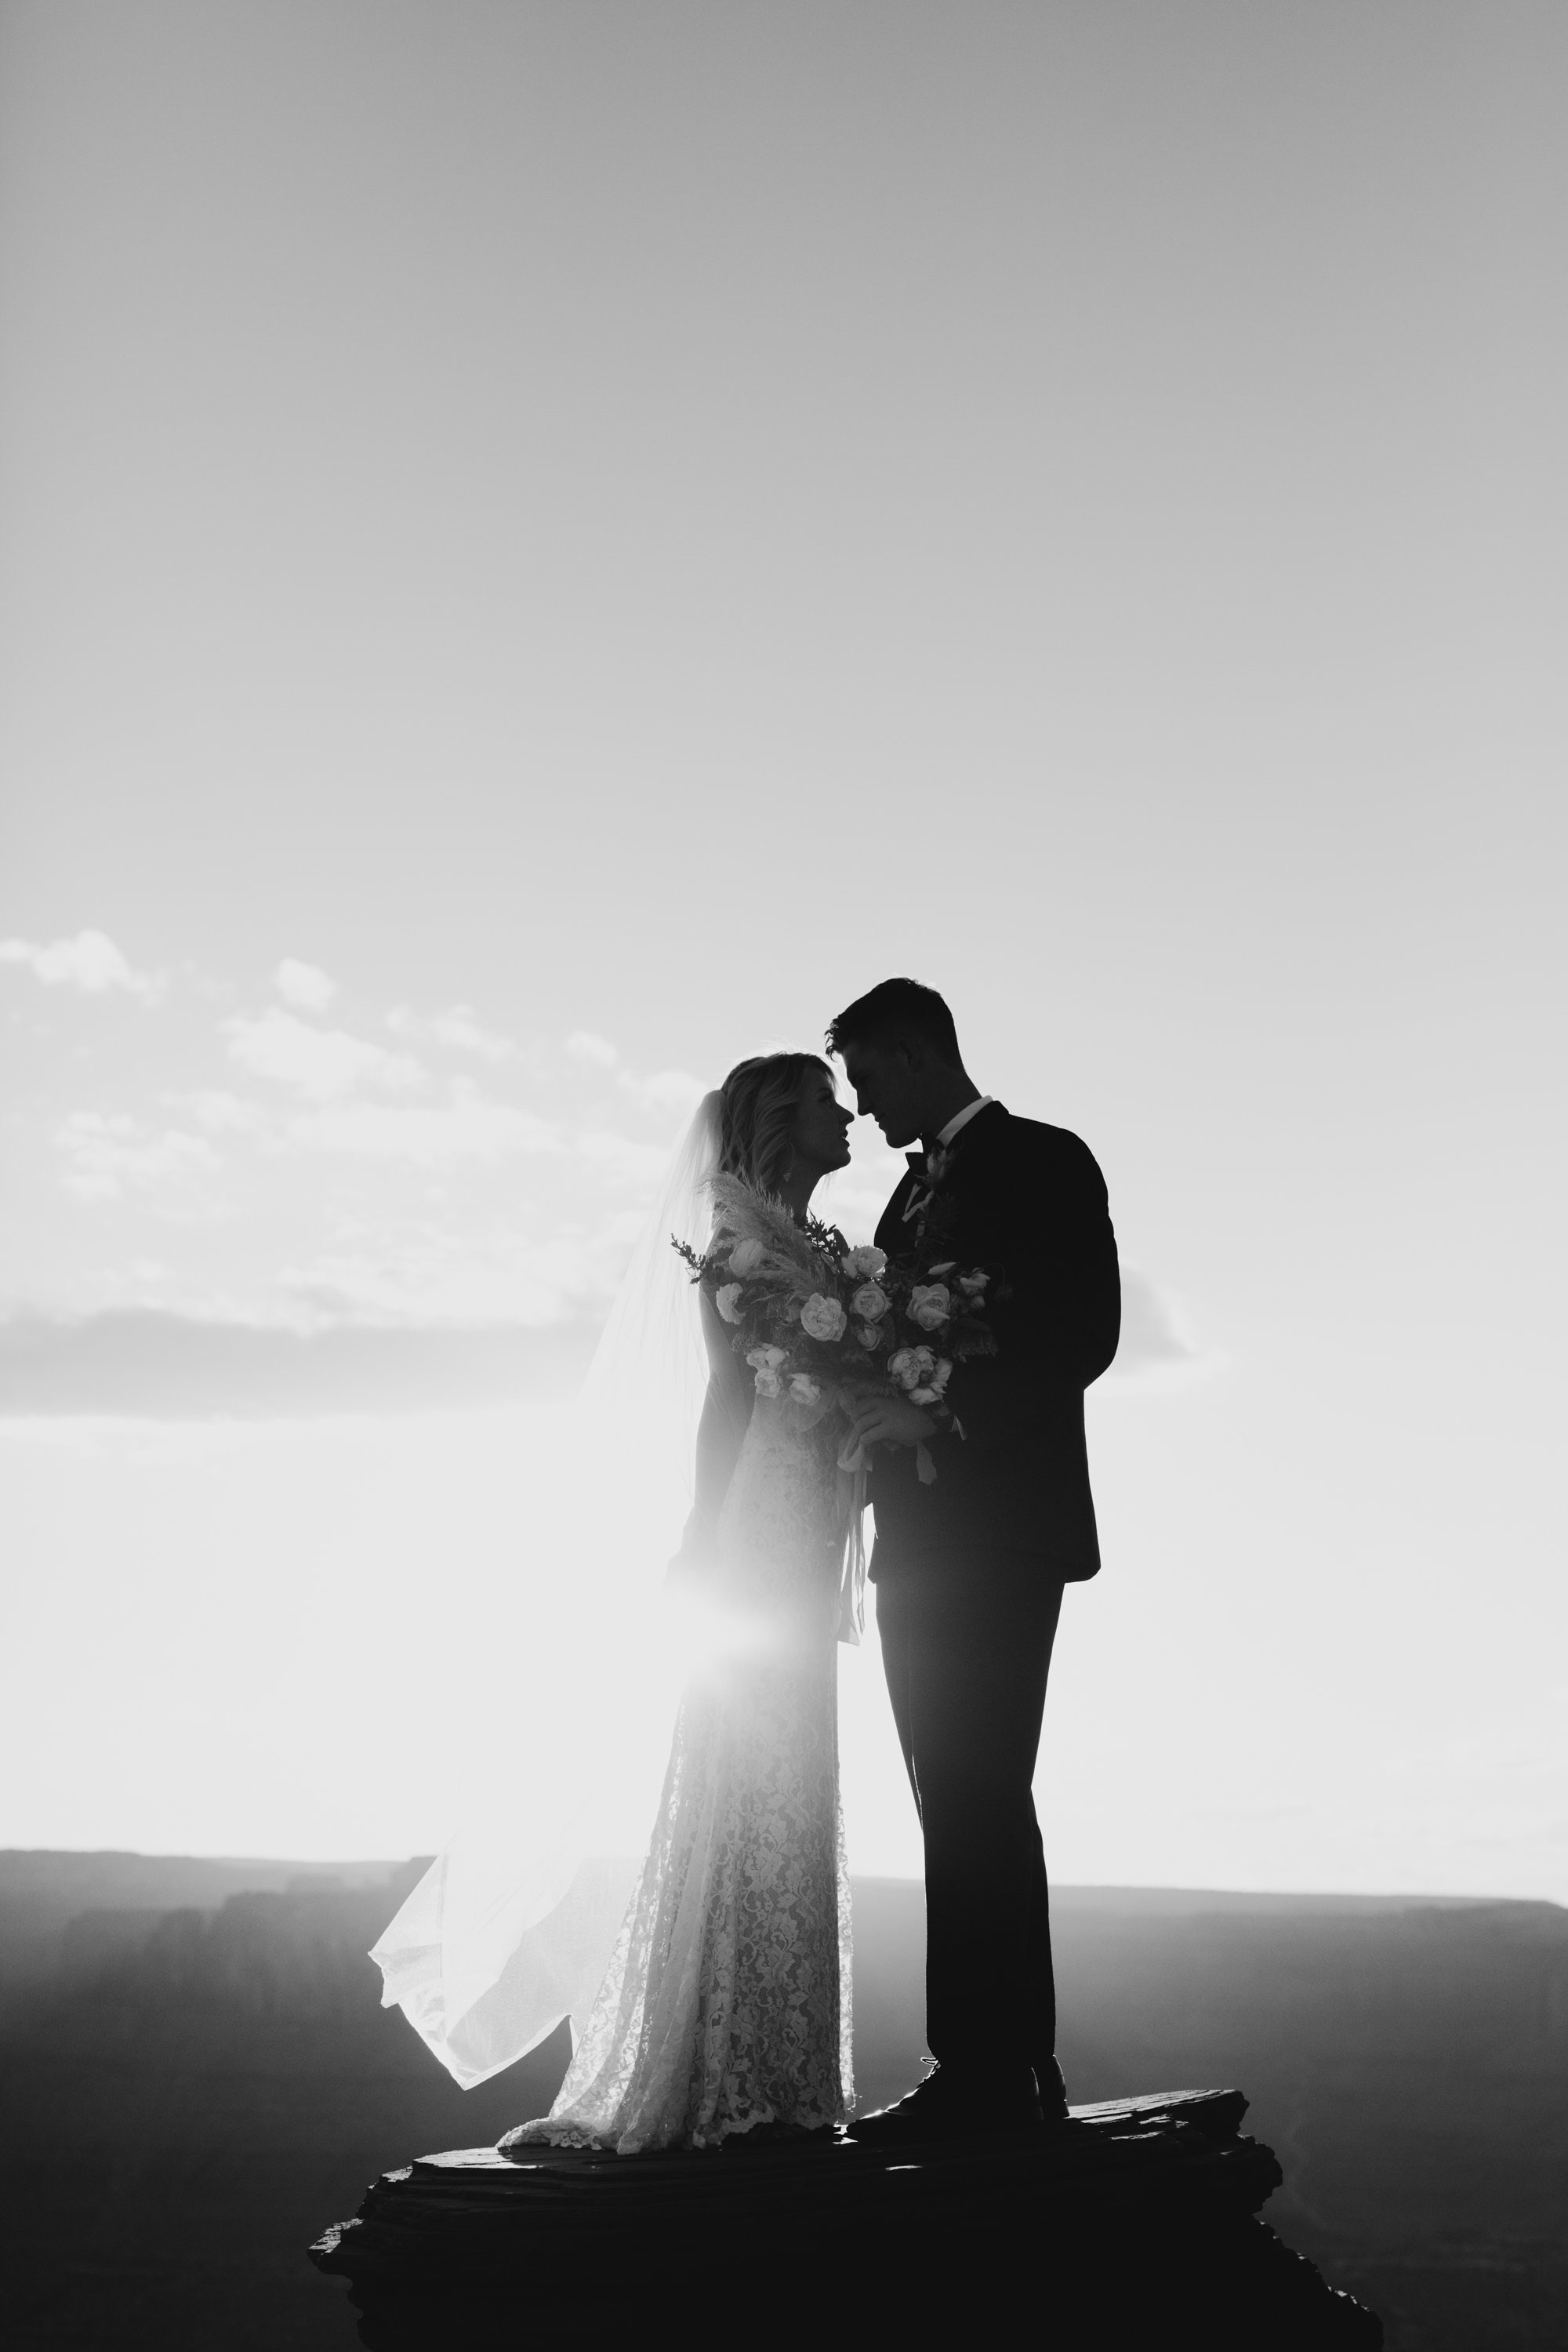 Kylie+Tyler-sunset-72.jpg.jpeg